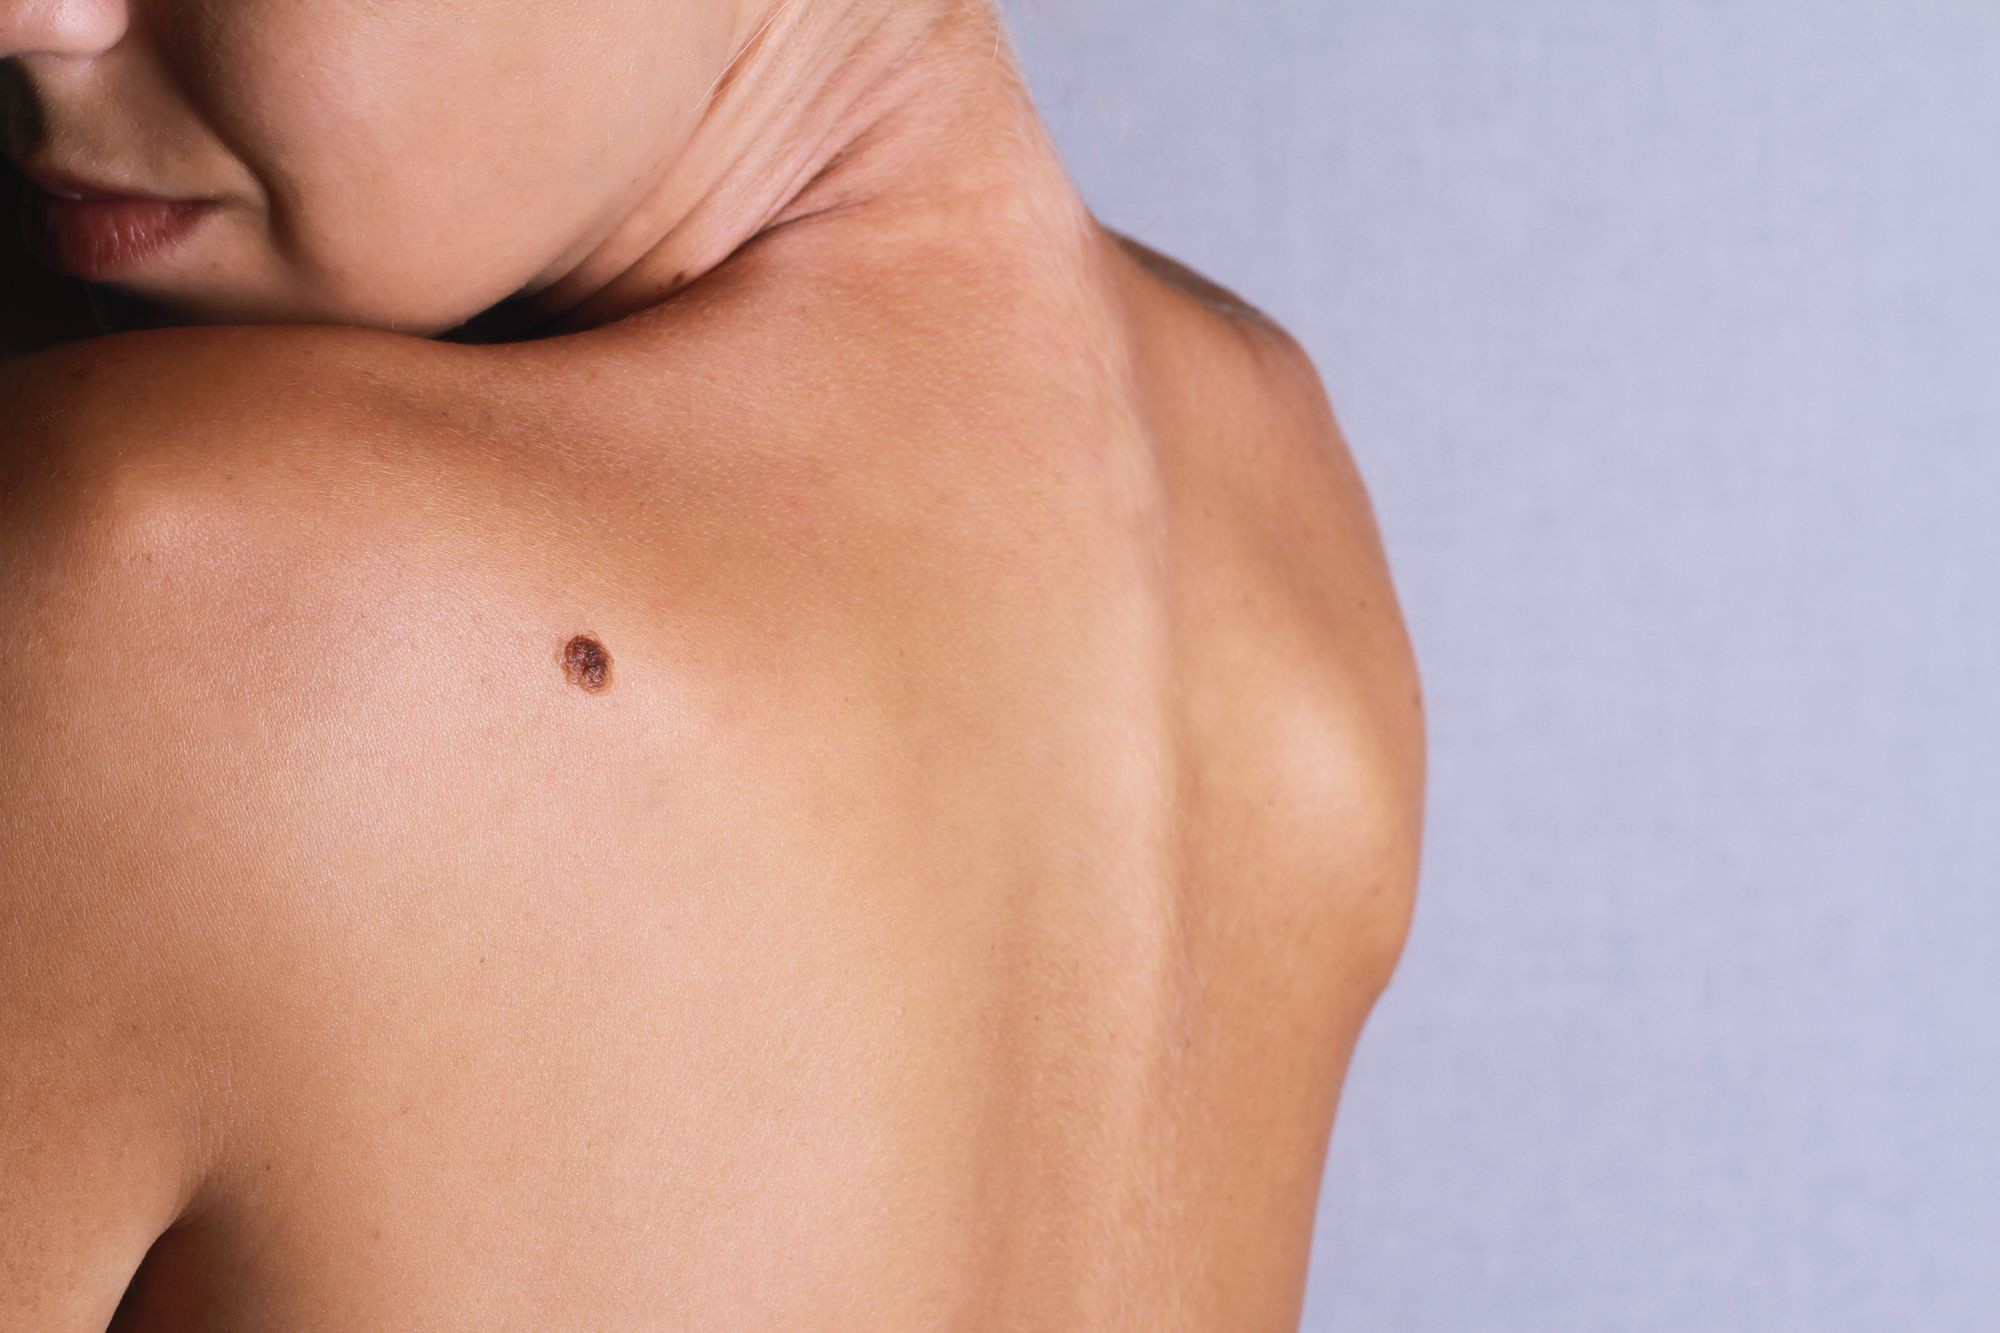 Skin Tag And Mole Removal Cryotherapy By Veera Vp Medium